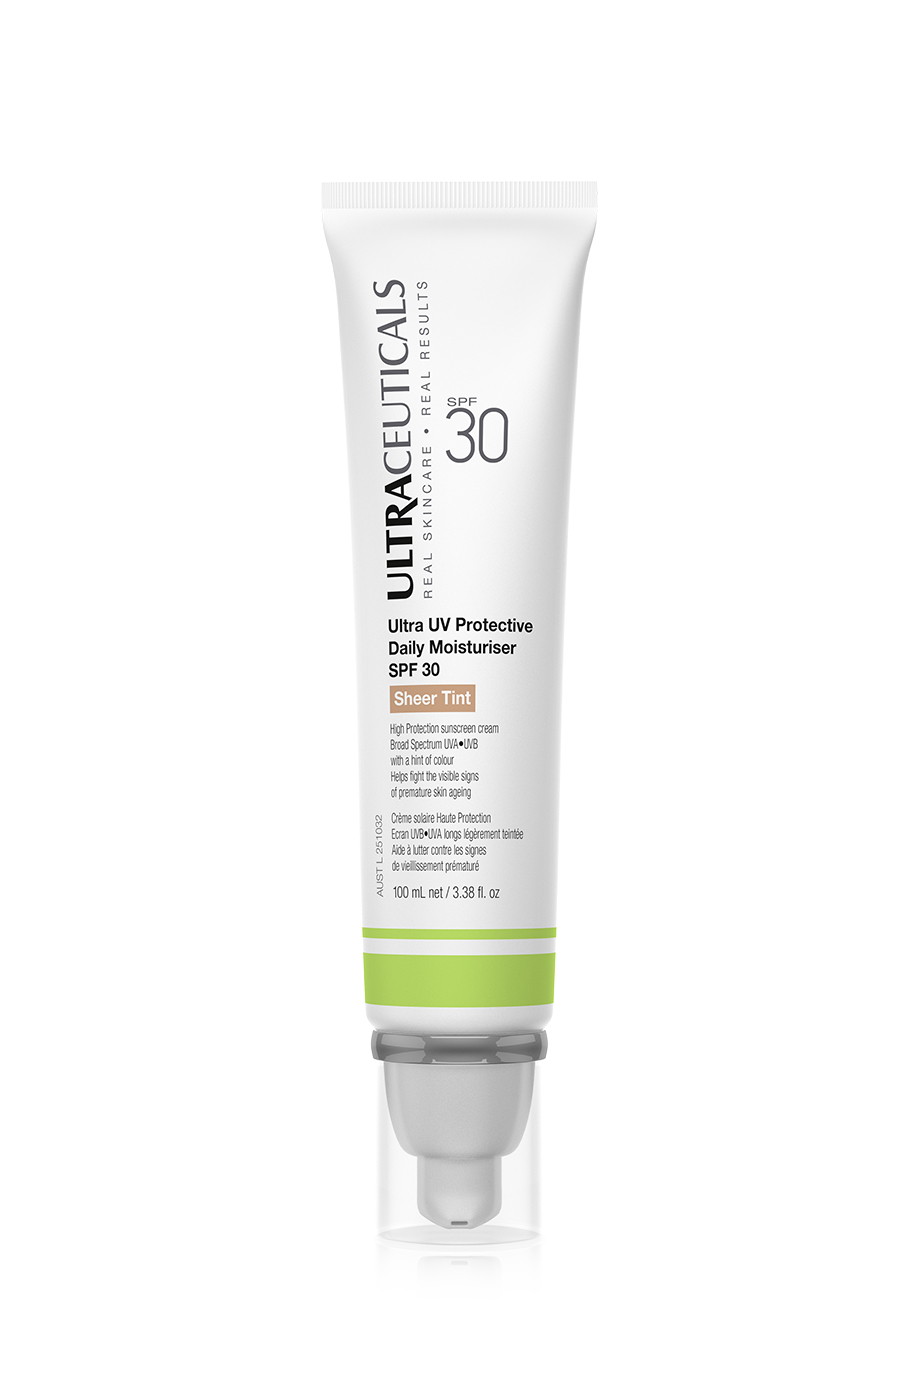 Ultraceuticals Ultra UV Protective Daily Moisturiser SPF 30 Sheer Tint